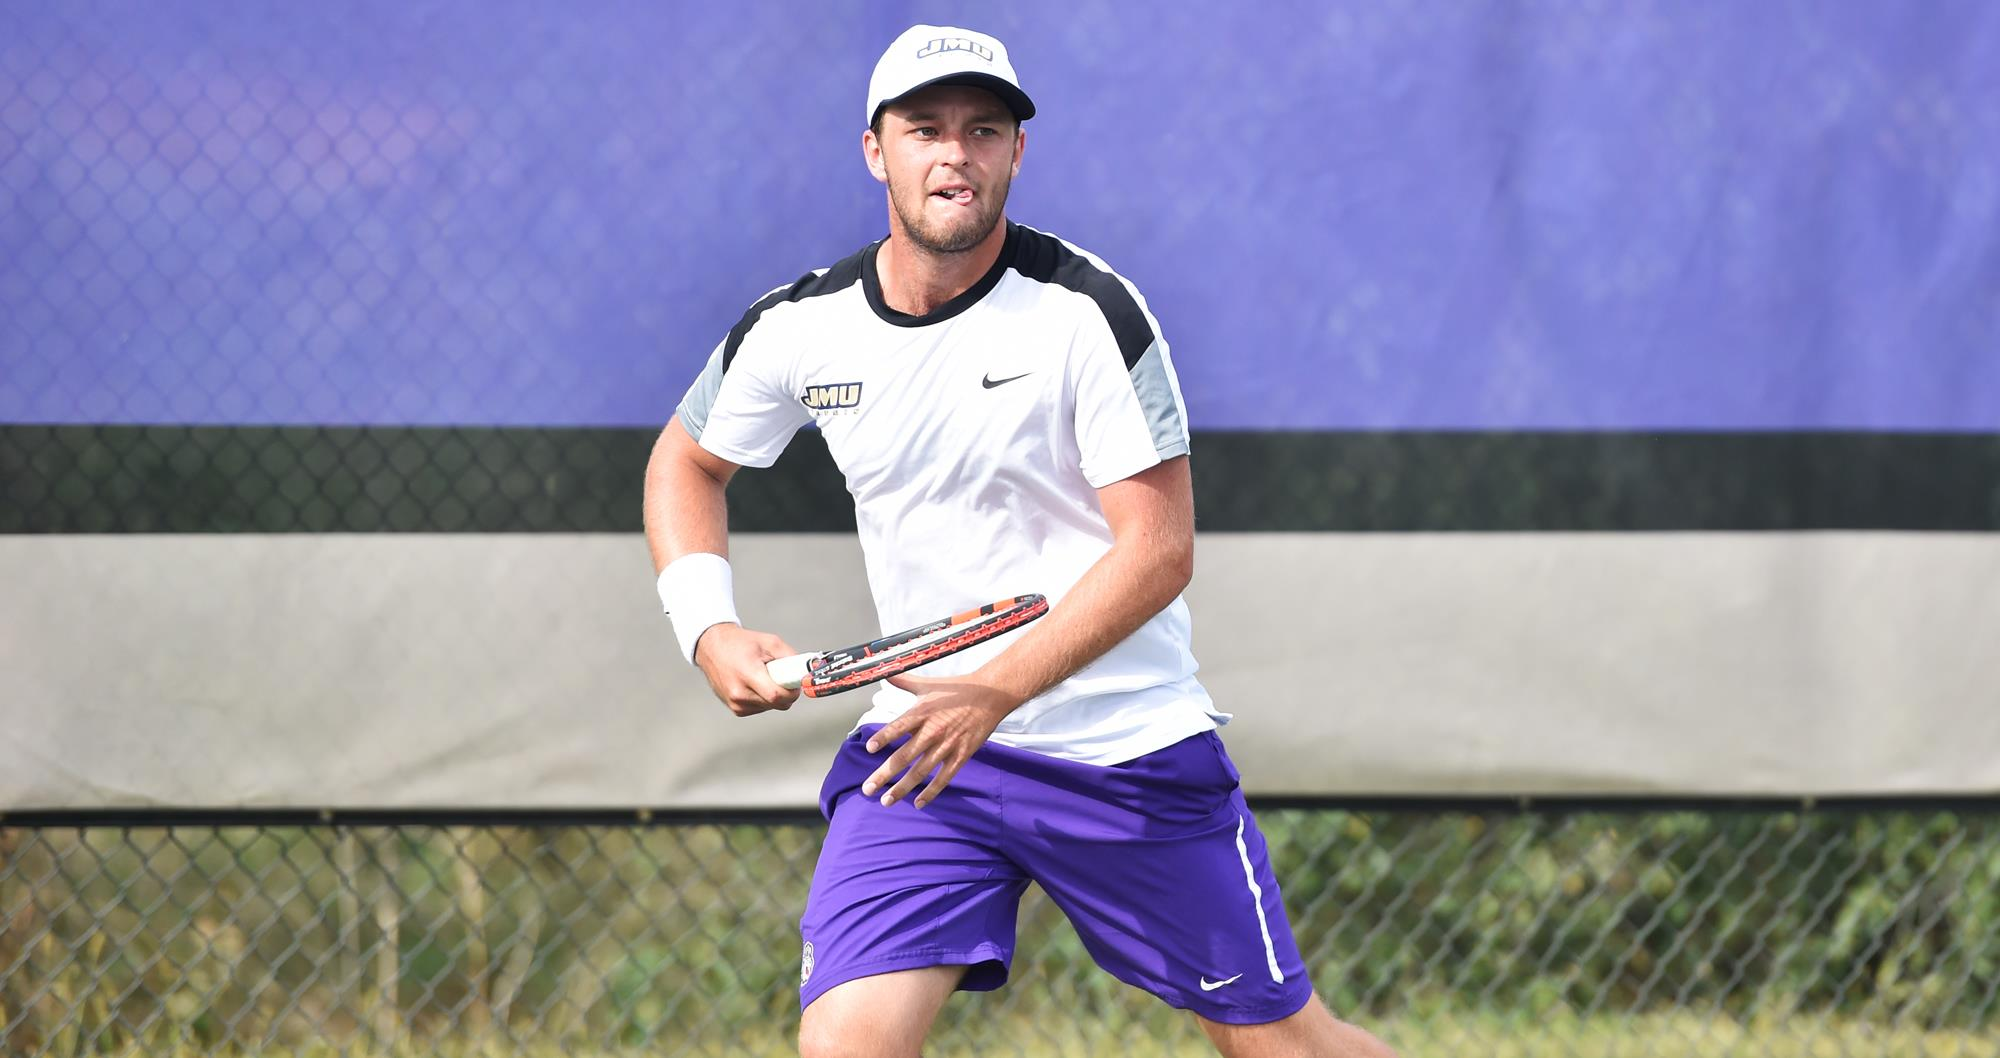 Men's Tennis: Roberts Advances on Day One of Wolfpack Invitational